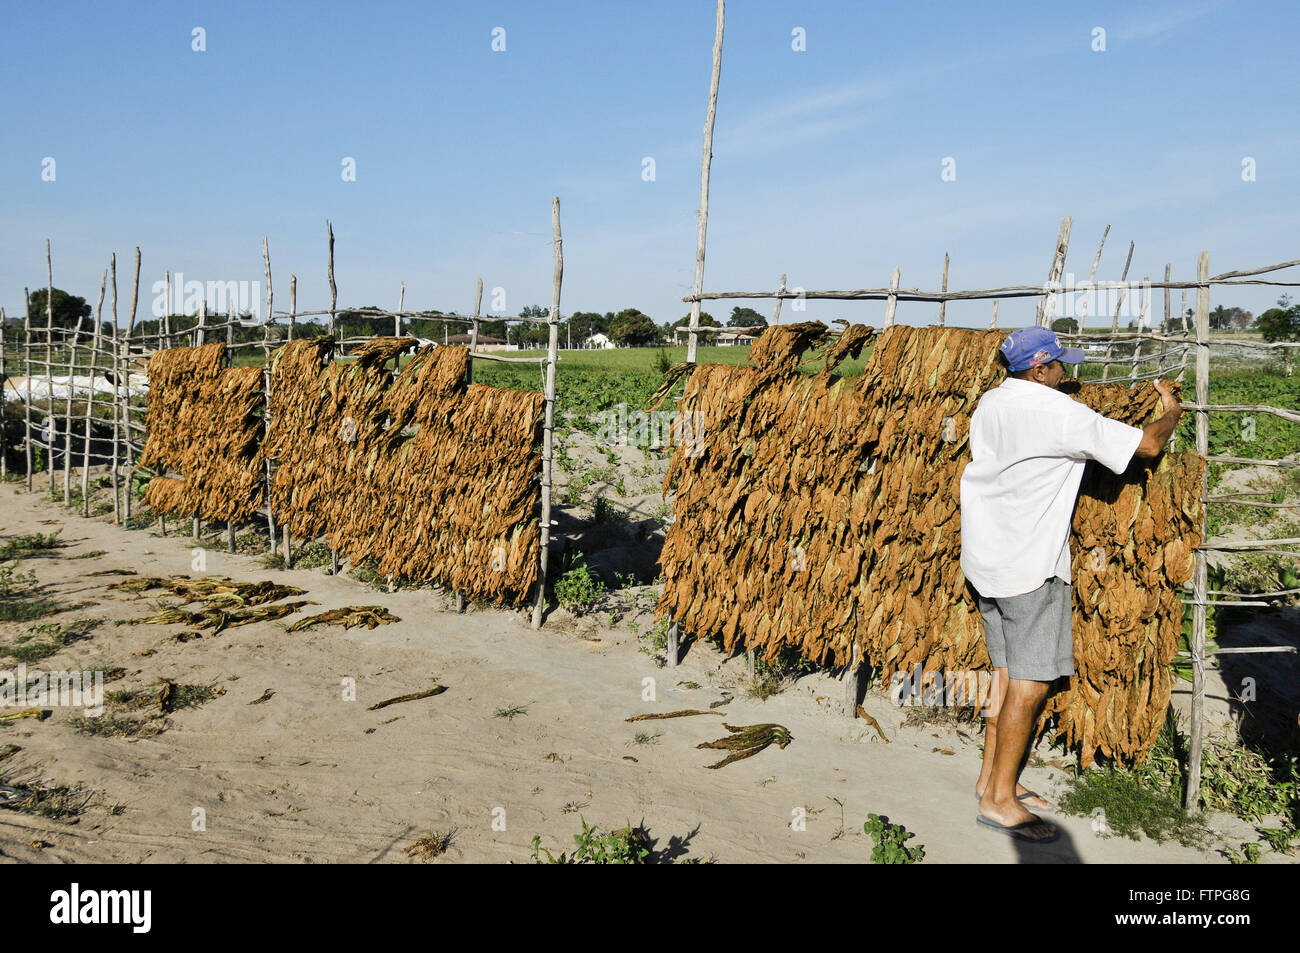 Drying tobacco leaves in the countryside - the rough region - Stock Image